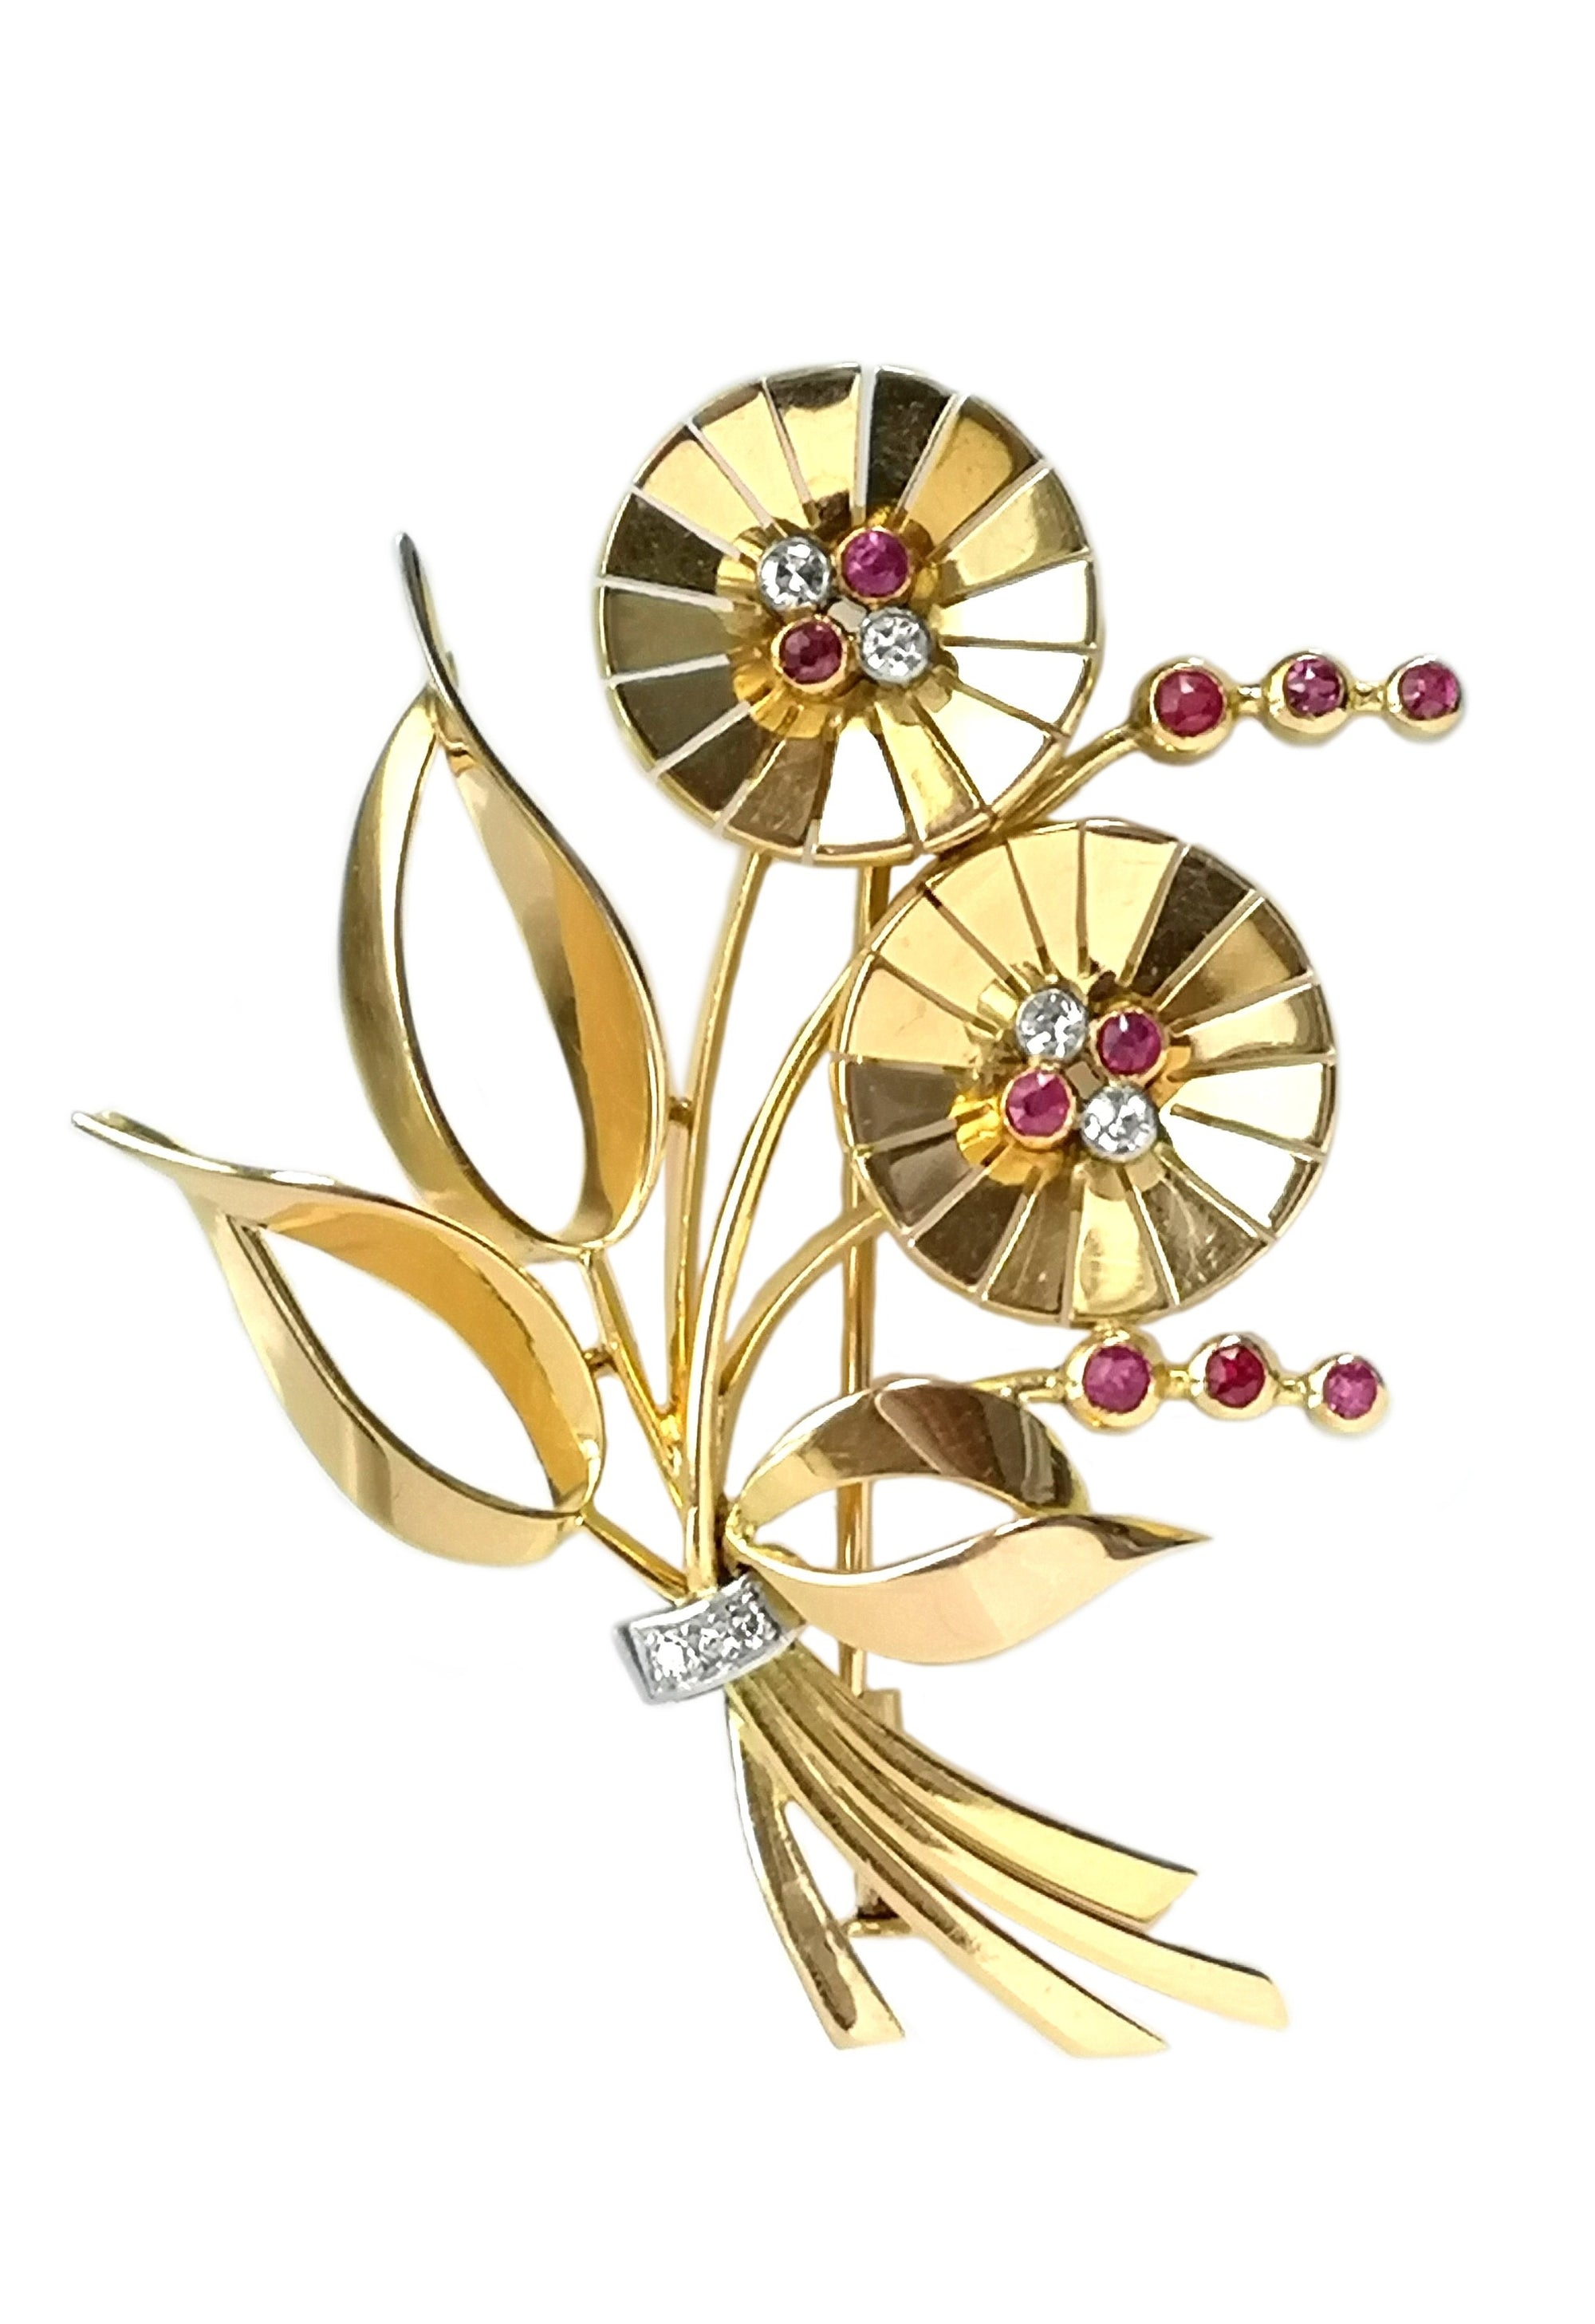 1940s Retro Diamond Synthetic Ruby 18k Yellow Gold Brooch